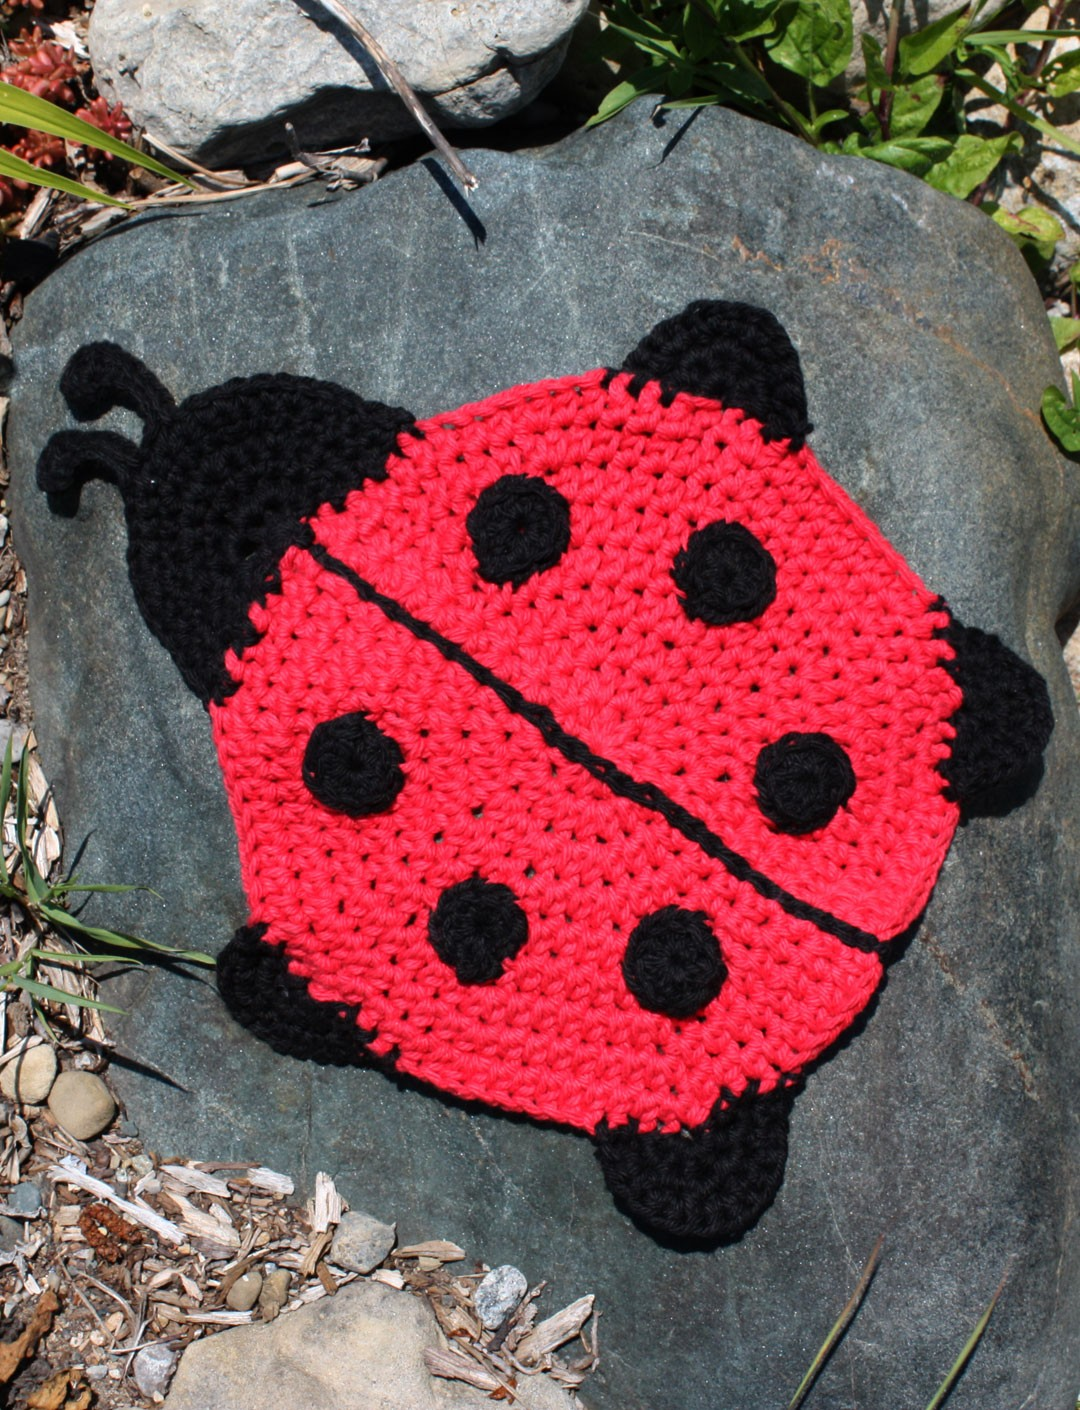 Free Crochet Patterns Lily Sugar Cream : Lily Ladybug Dishcloth, Crochet Pattern Yarnspirations